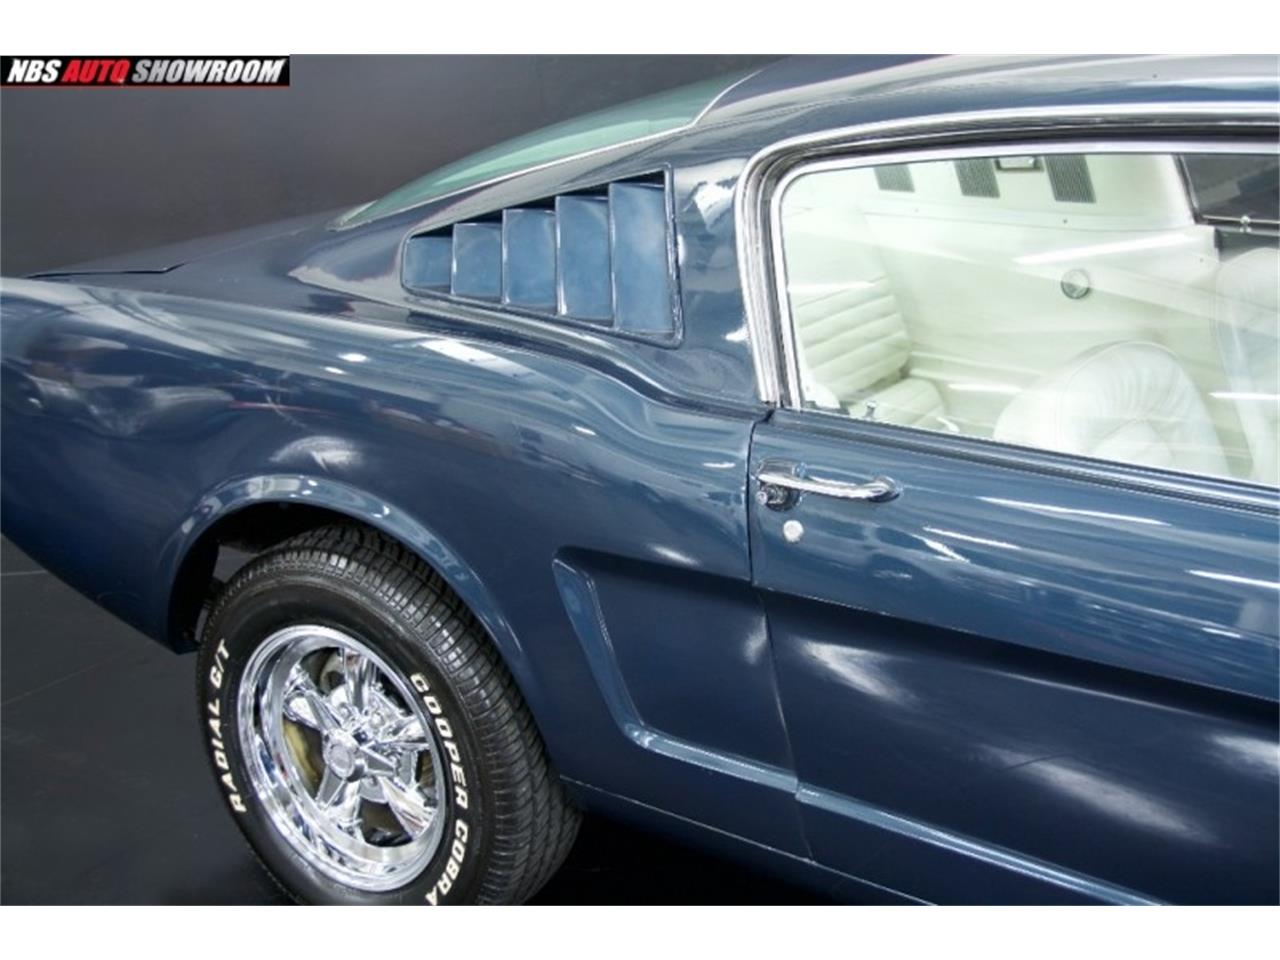 Large Picture of Classic '65 Ford Mustang located in California Offered by NBS Auto Showroom - PHR5